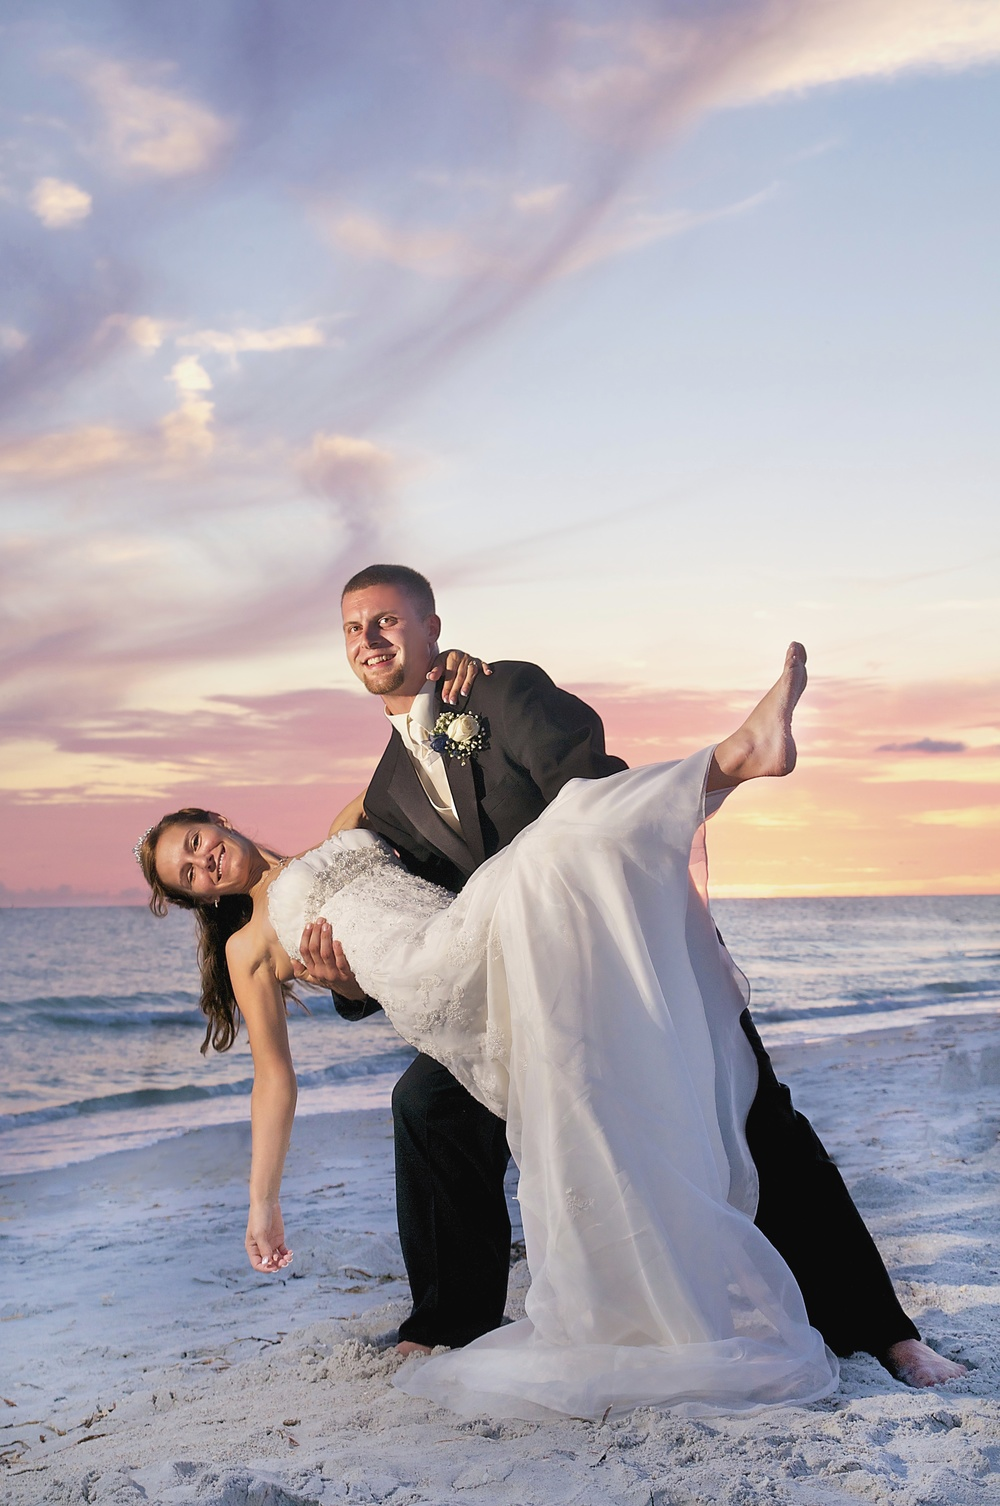 bride-groom-dip-beach-wedding-portrait-florida.jpg